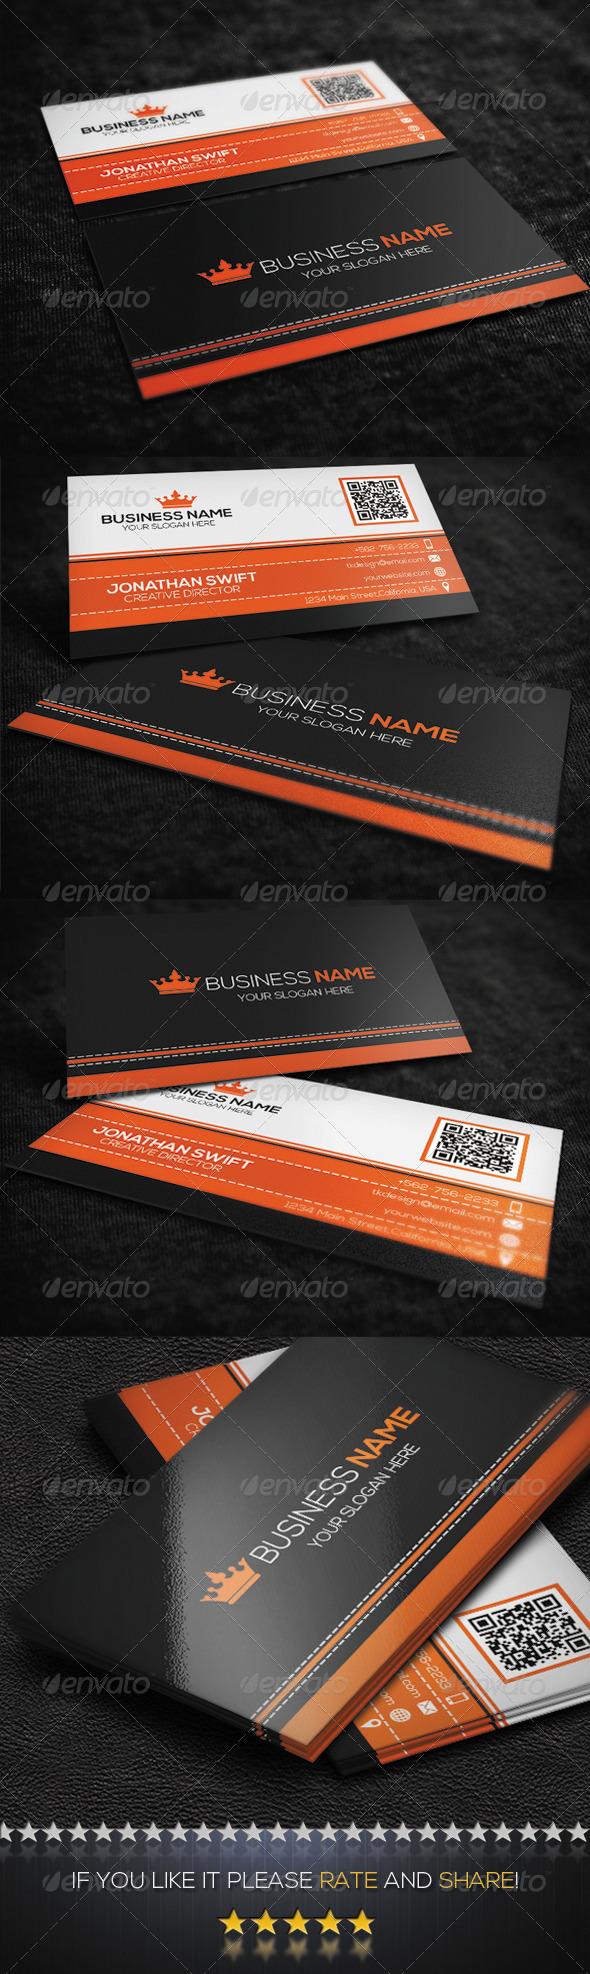 GraphicRiver Corporate Business Card No.06 8493807